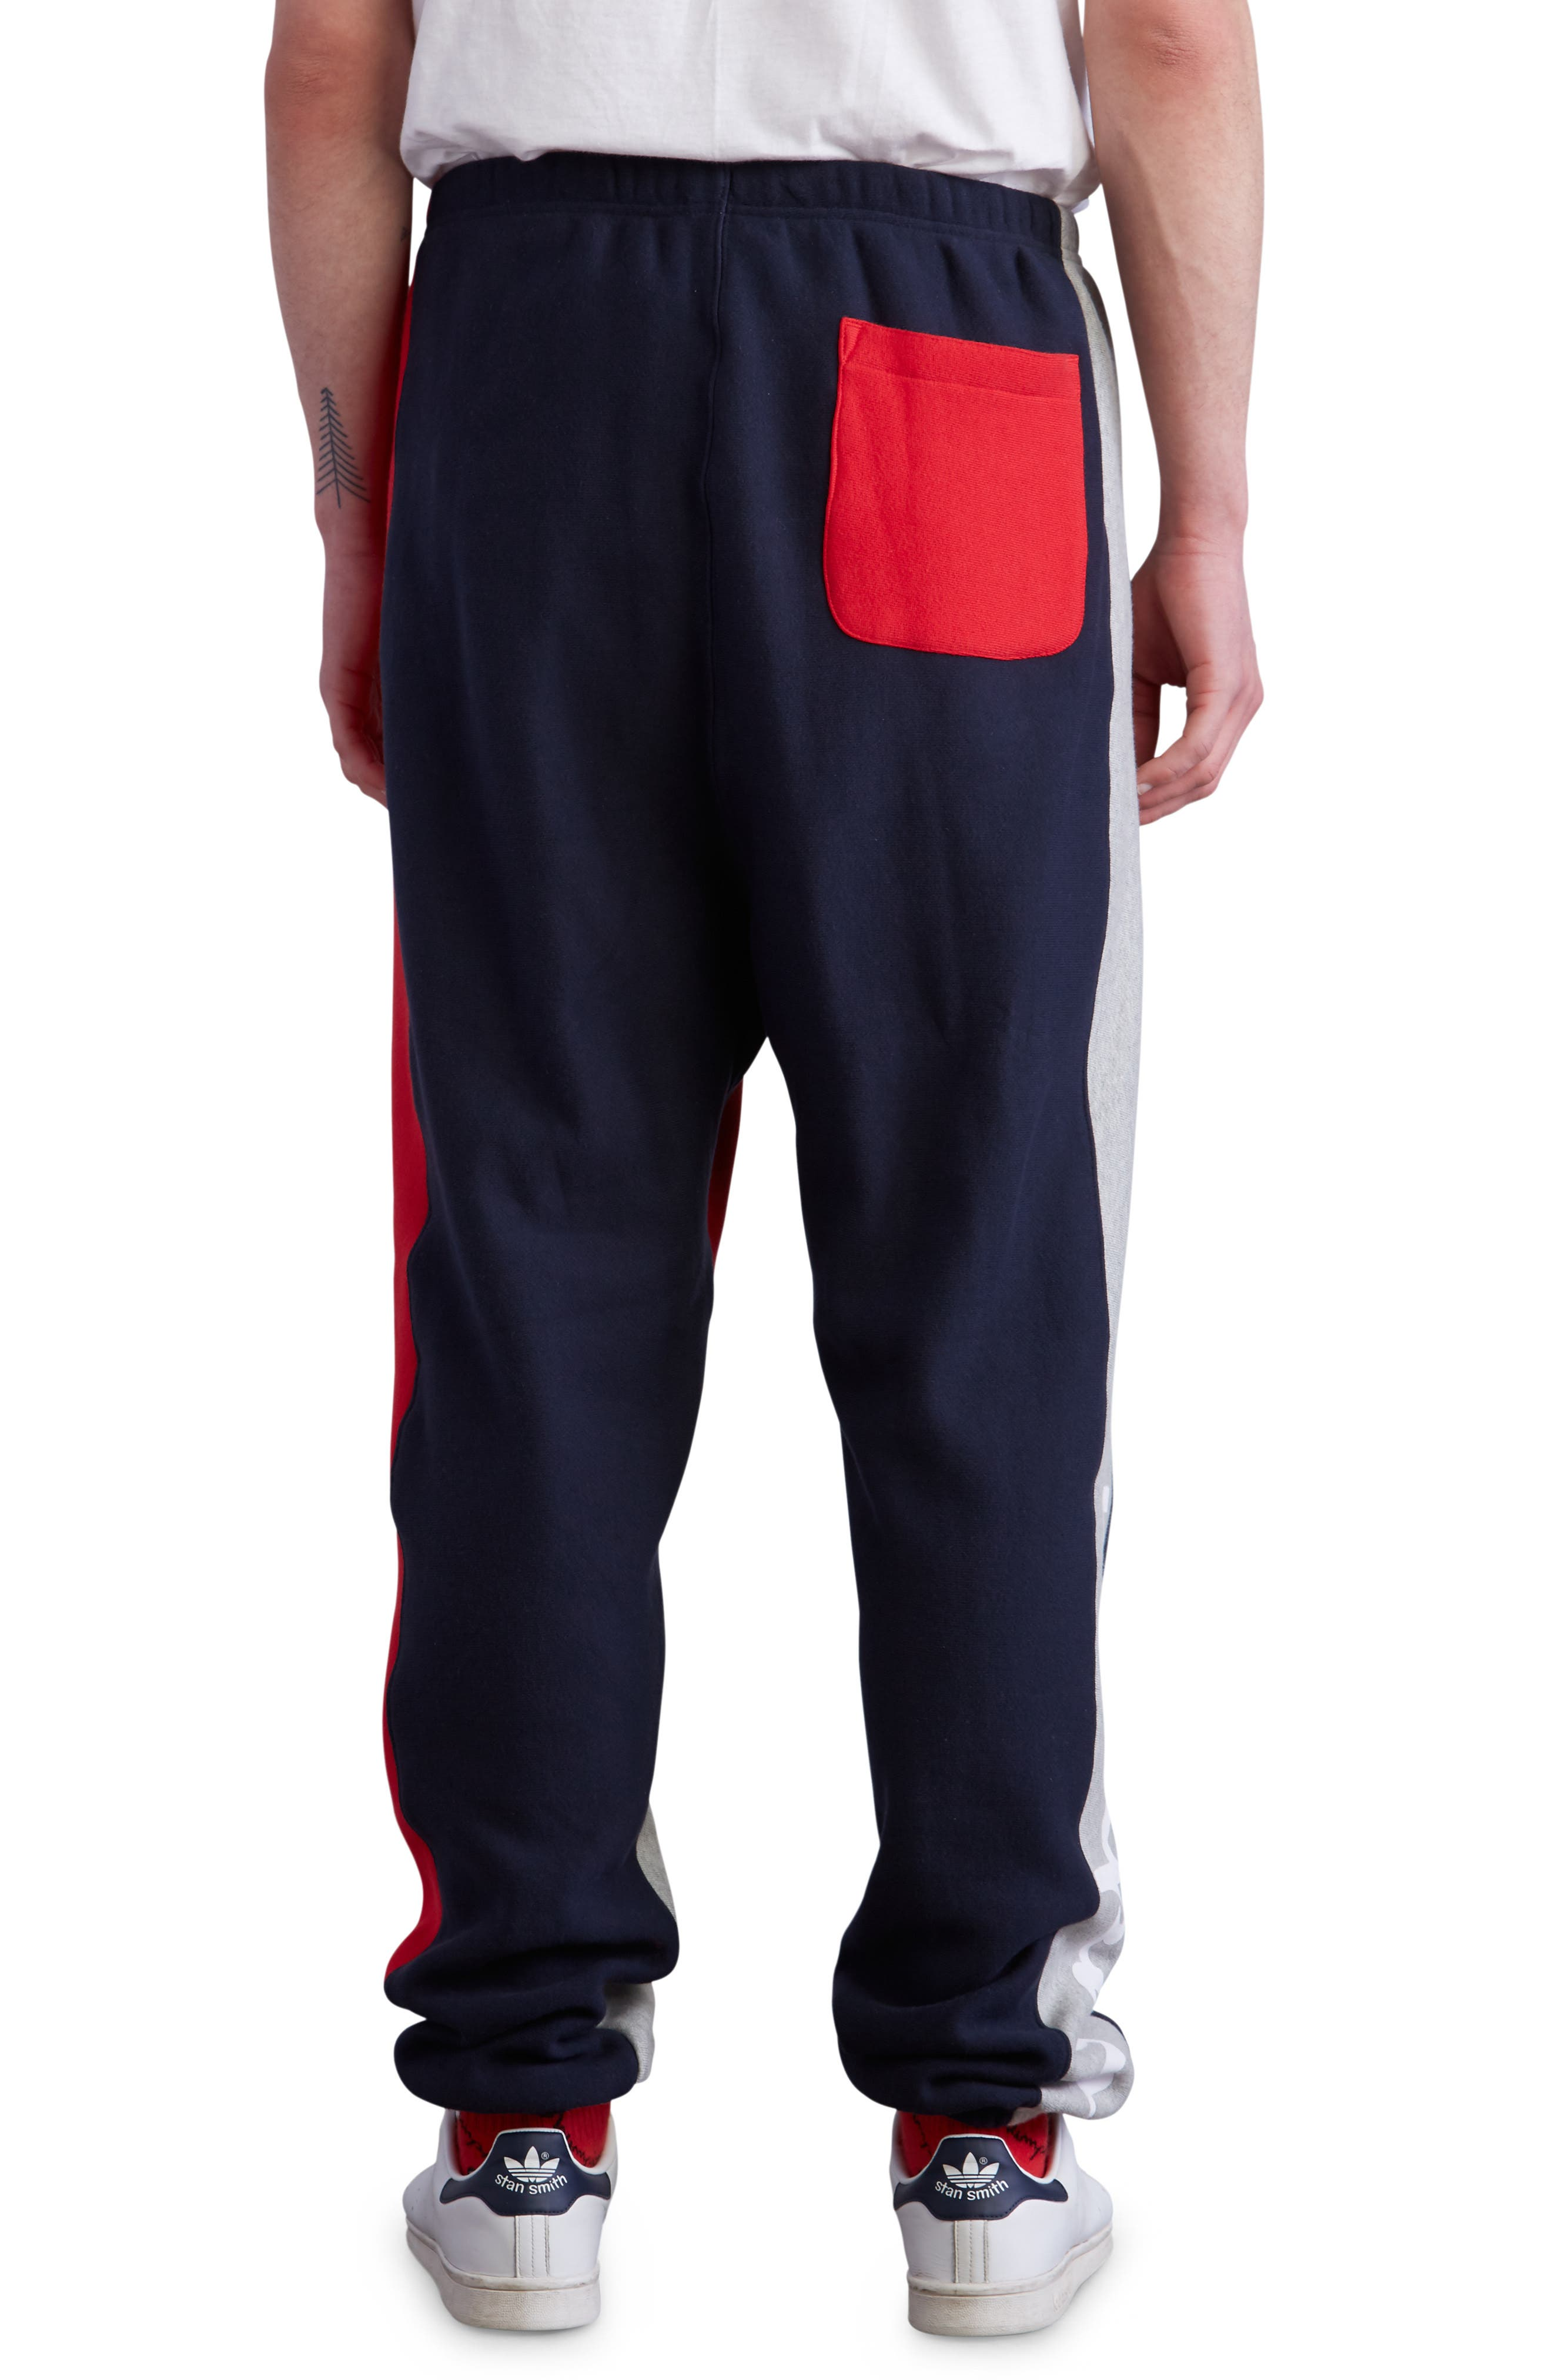 Colorblock Sweatpants,                             Alternate thumbnail 2, color,                             NAVY/ OXFORD GREY/ SCARLET